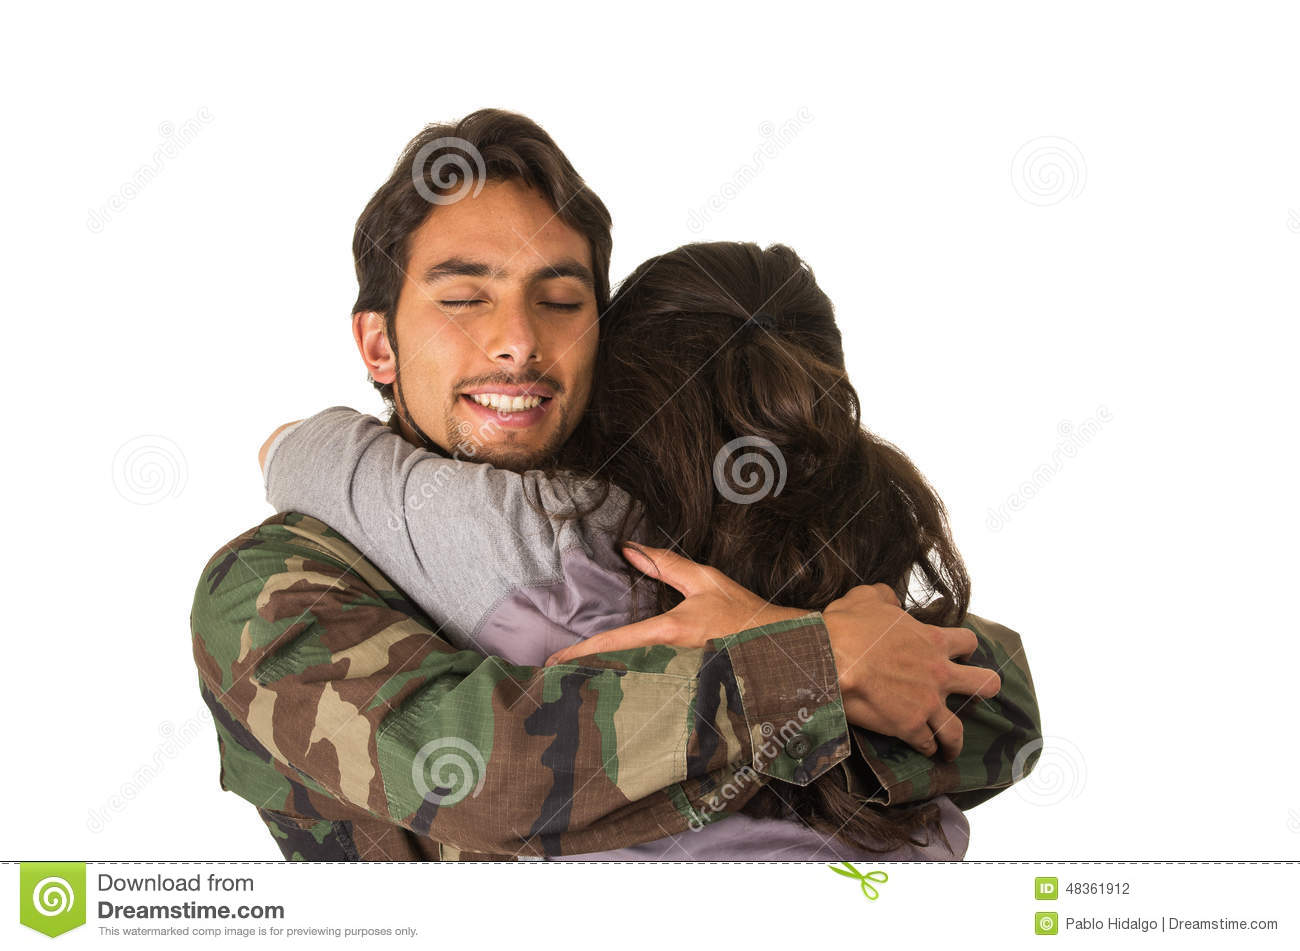 veteran hispanic single men Browse thousands of single white women dating latino men for interracial dating, relationships & marriage online a navy veteran and a registered nurse.